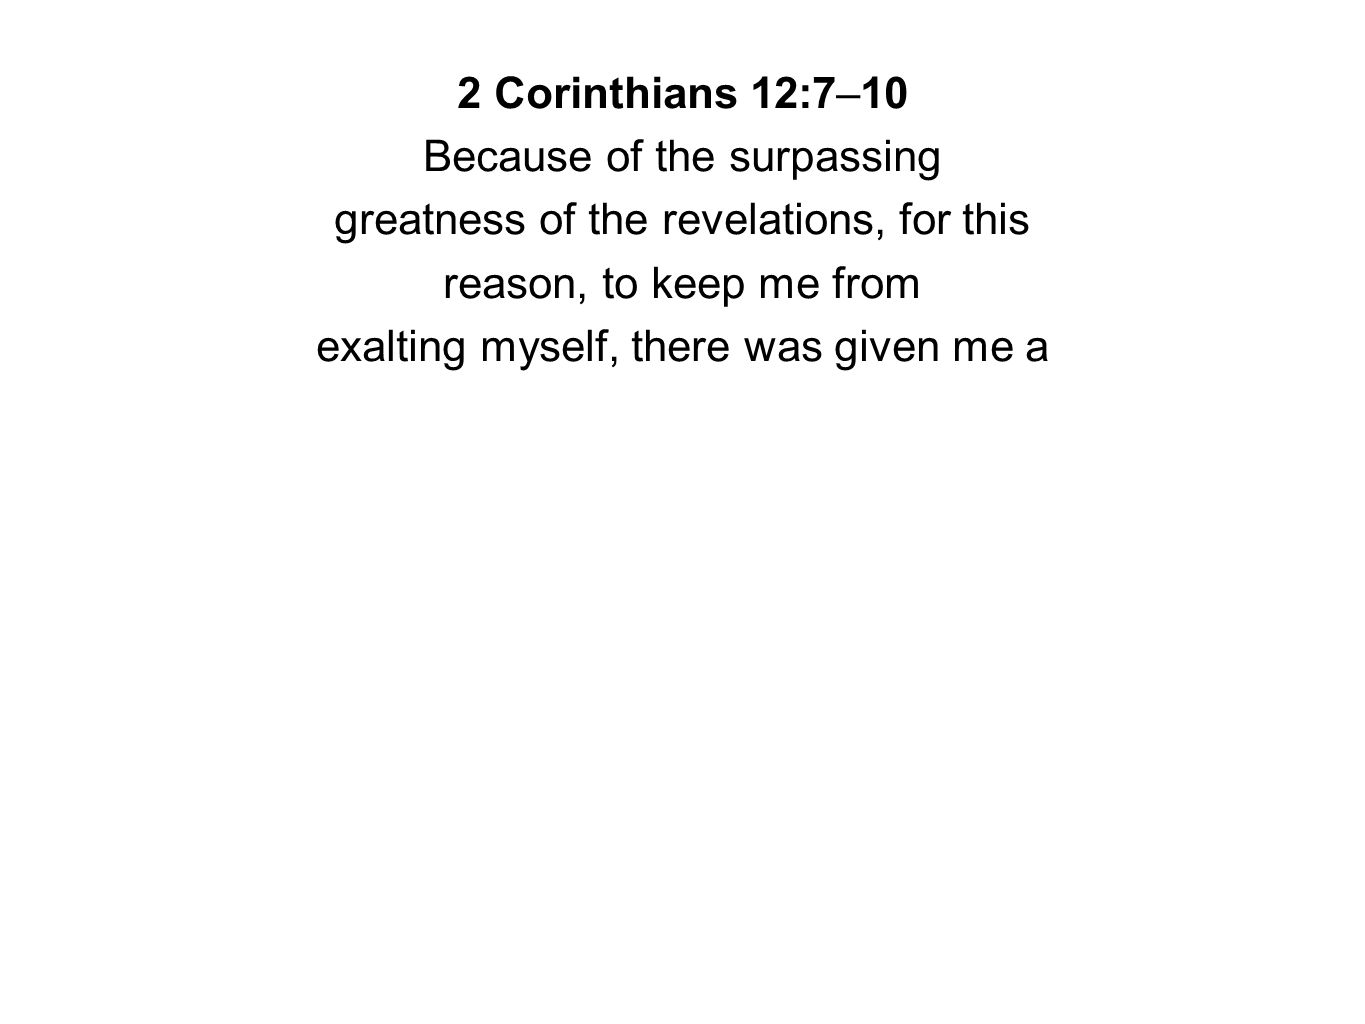 2 Corinthians 12:7–10 Because of the surpassing greatness of the revelations, for this reason, to keep me from exalting myself, there was given me a